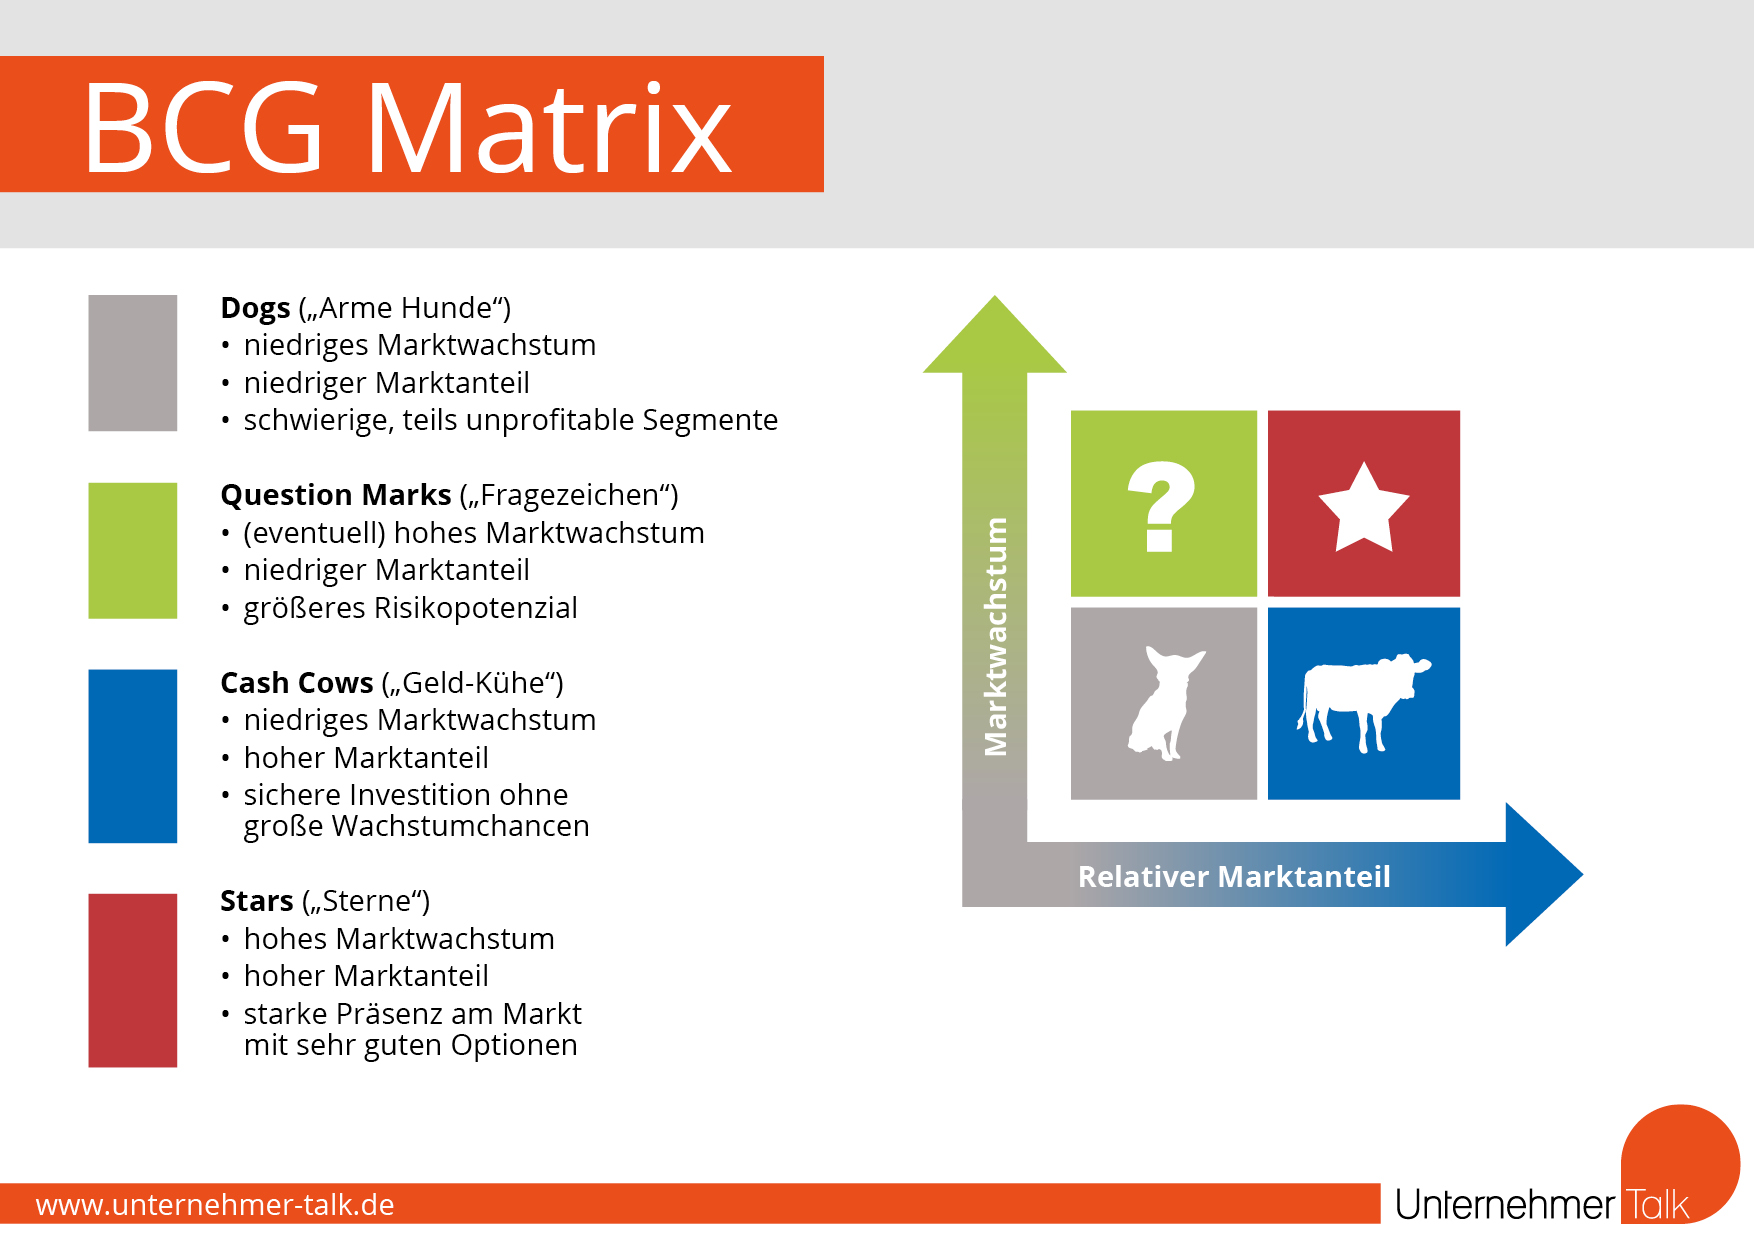 BCG Matrix der Boston Consulting Group